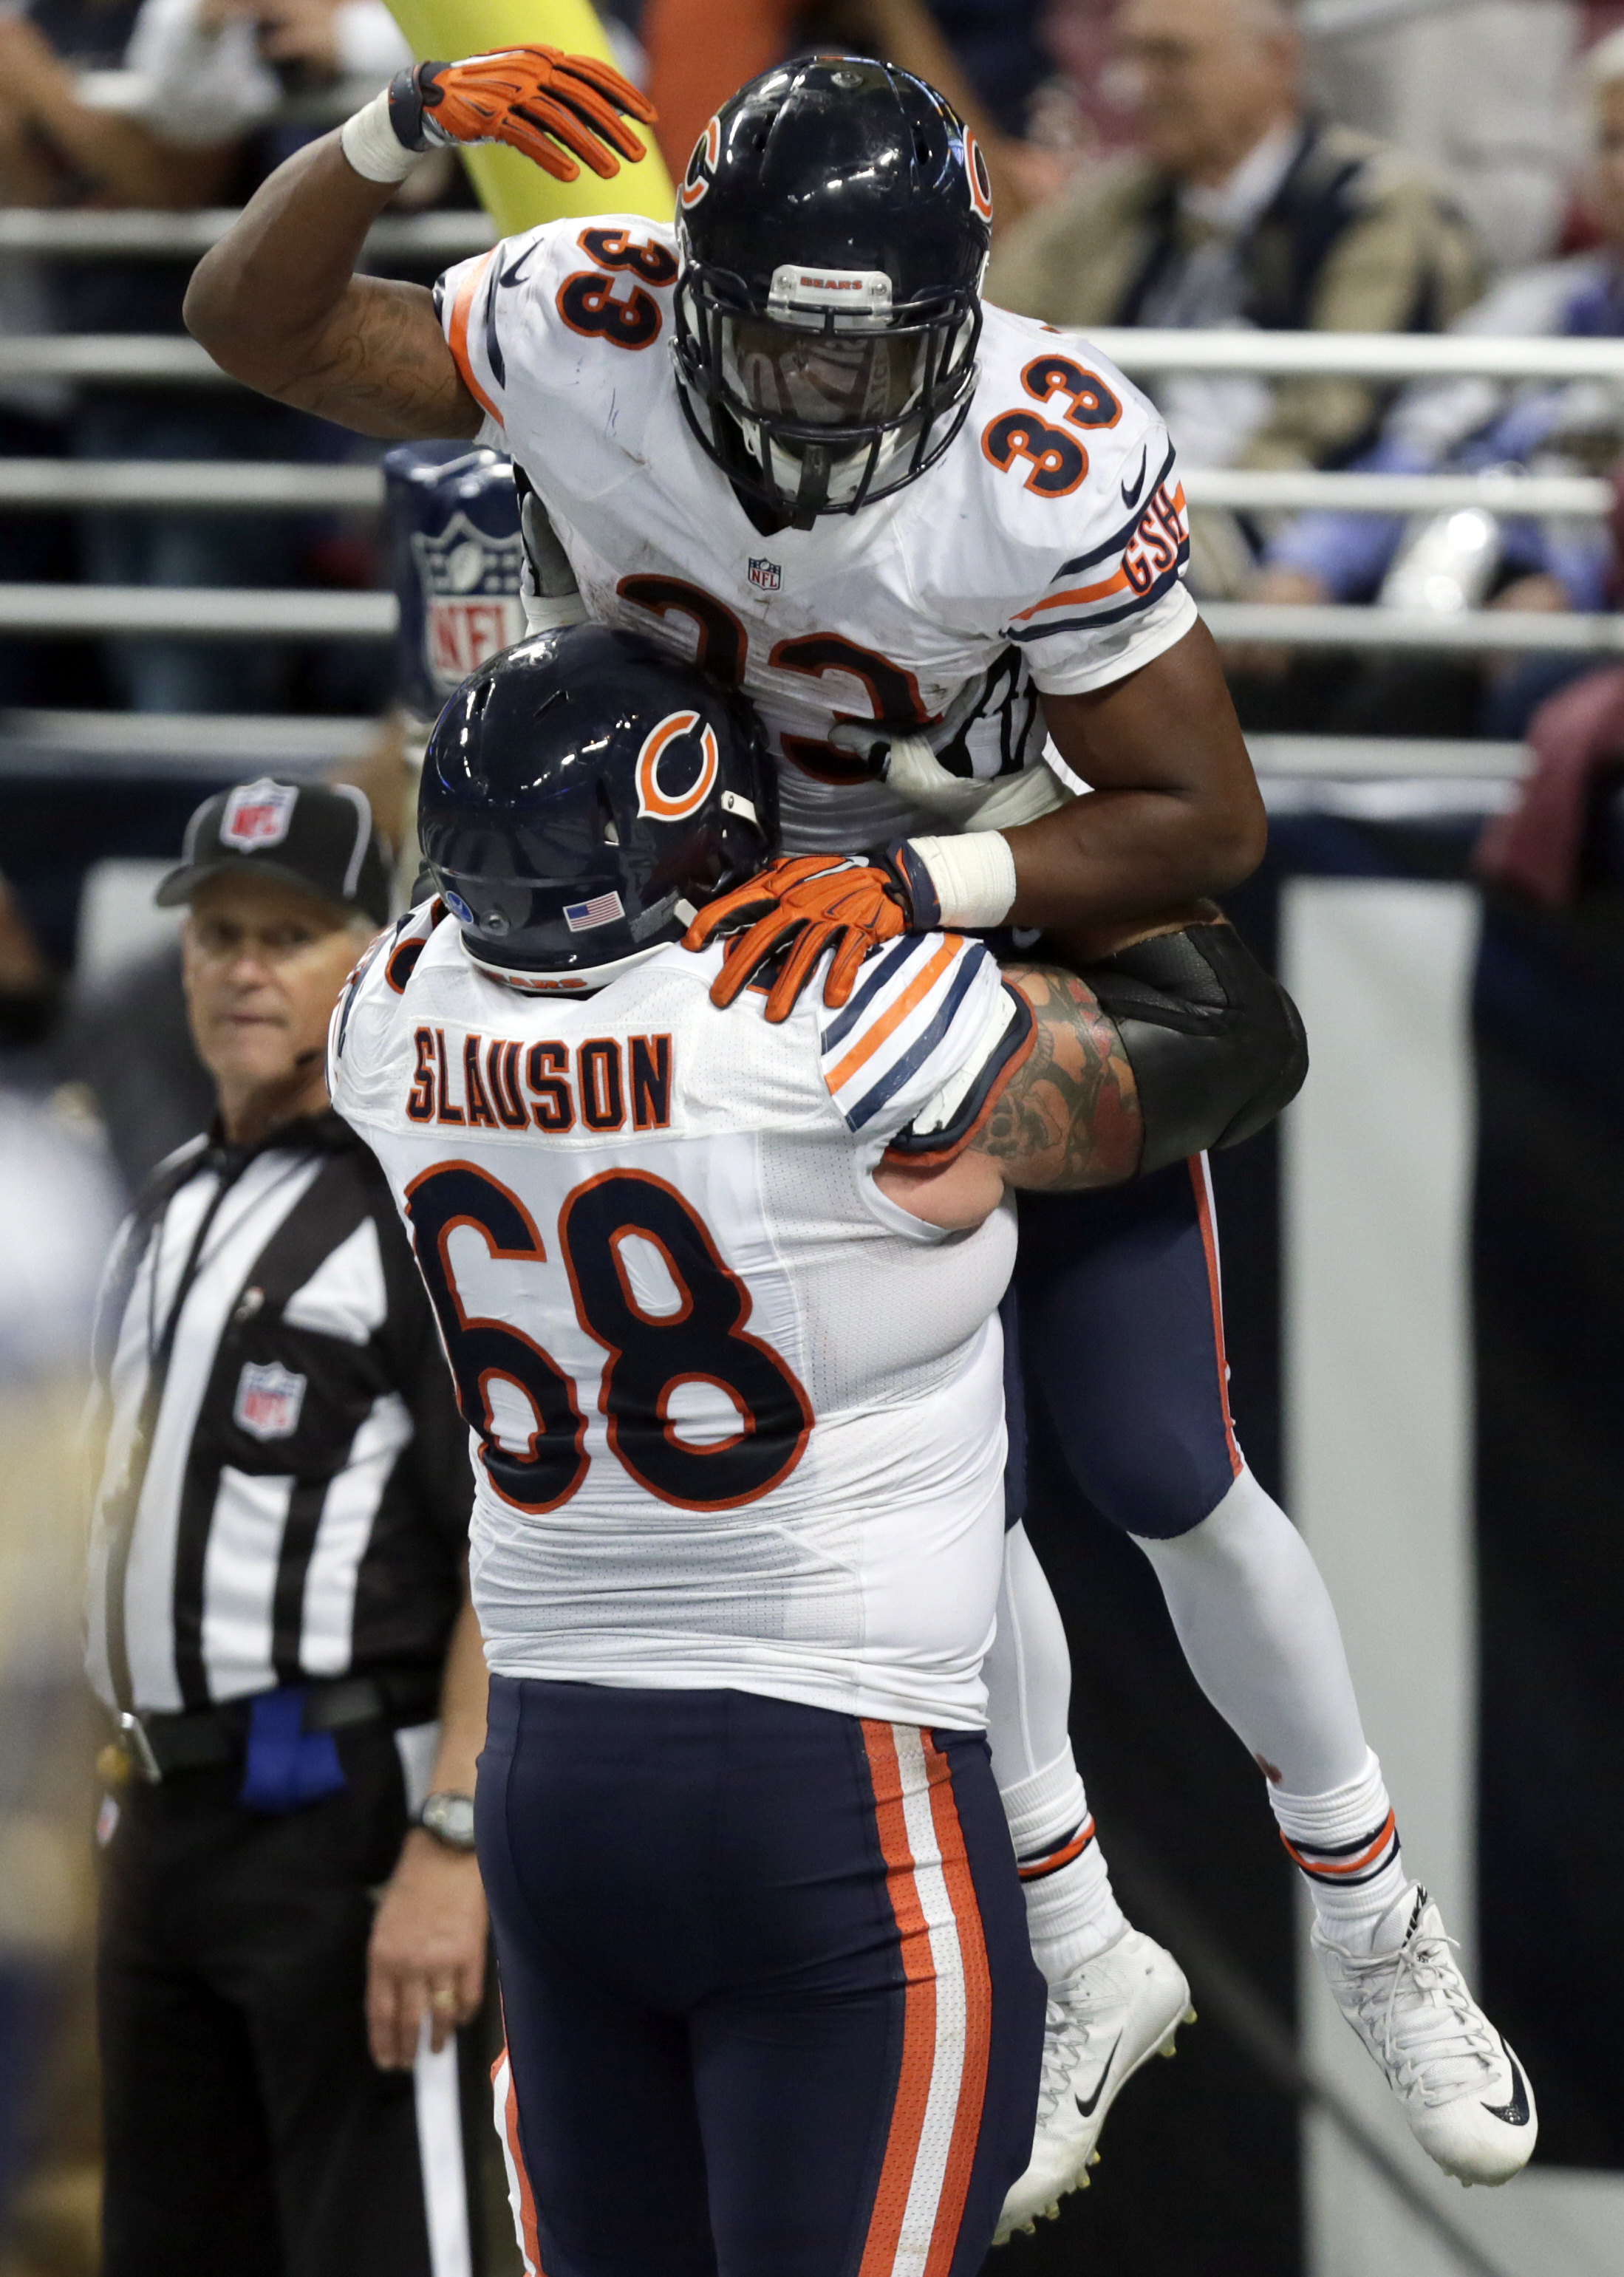 Chicago Bears running back Jeremy Langford (33) is congratulated by teammate Matt Slauson after scoring on a 6-yard run during the fourth quarter of an NFL football game against the St. Louis Rams Sunday, Nov. 15, 2015, in St. Louis. (AP Photo/Tom Gannam)